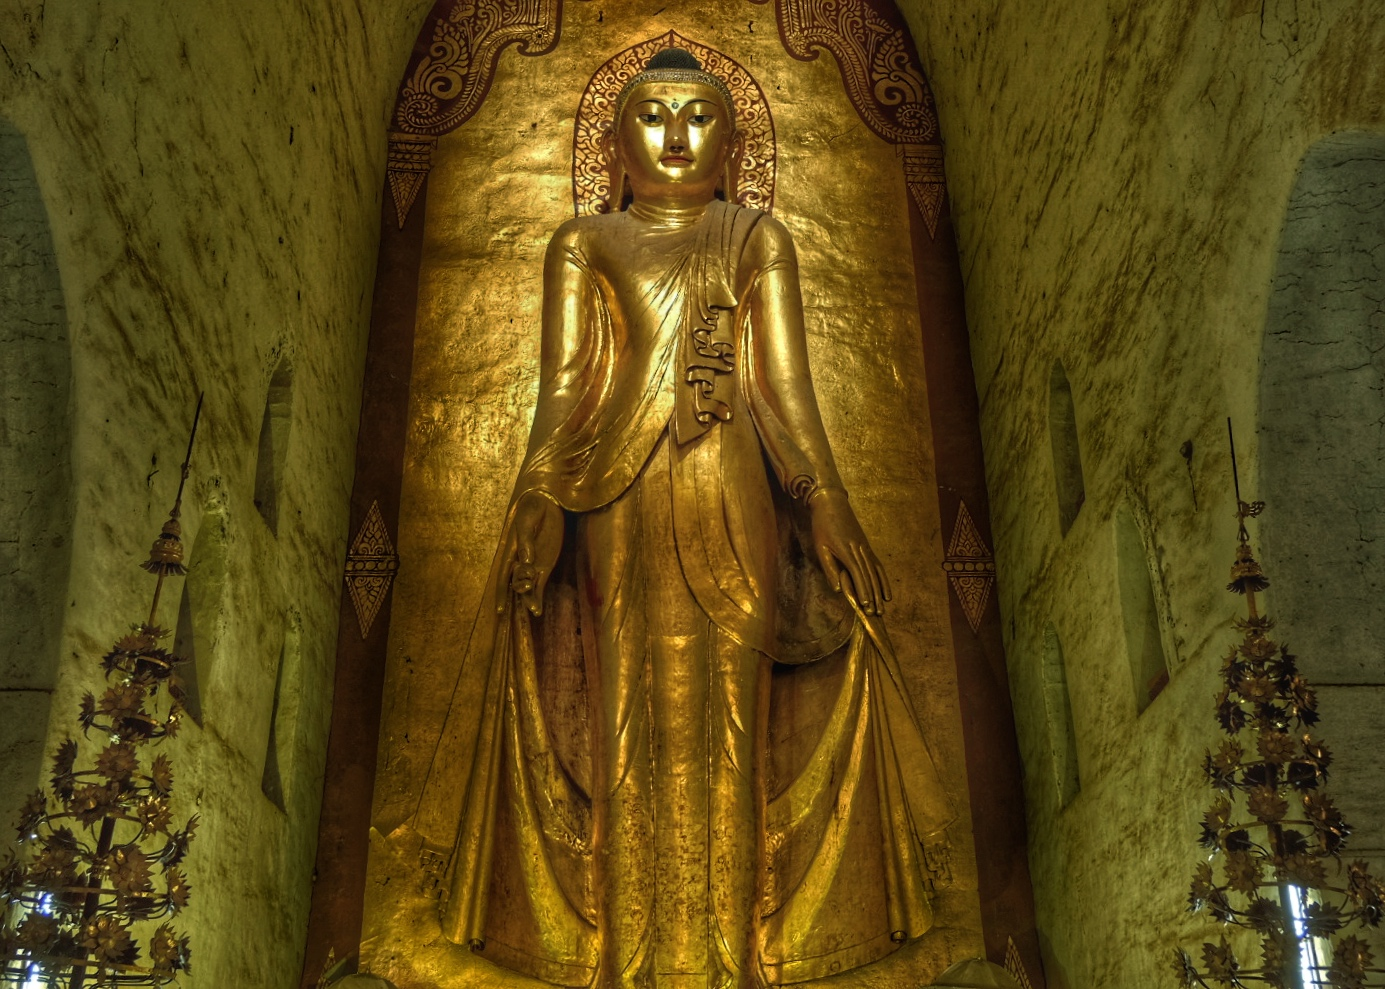 Statue of Buddha inside Ananda Temple.